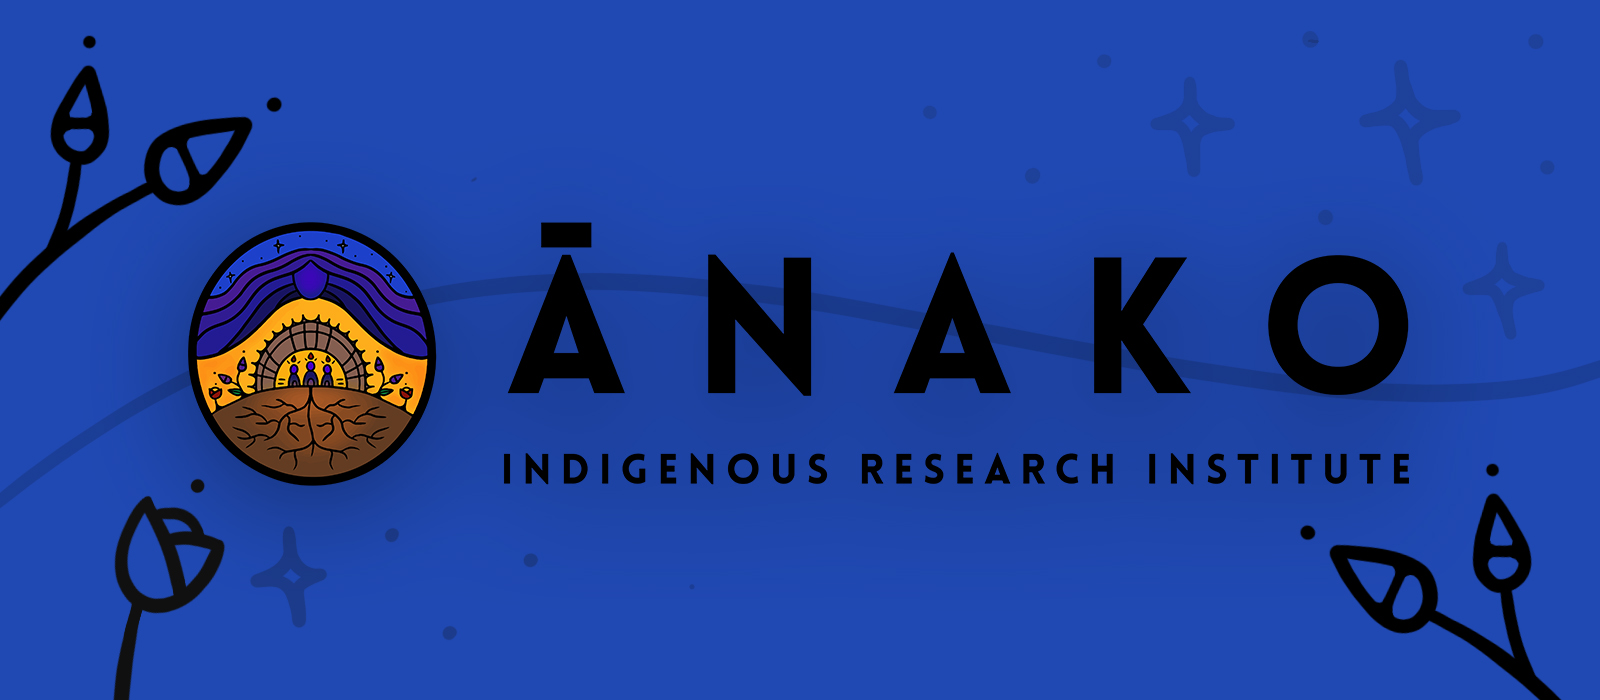 Banner image for Ānako Indigenous Research Institute